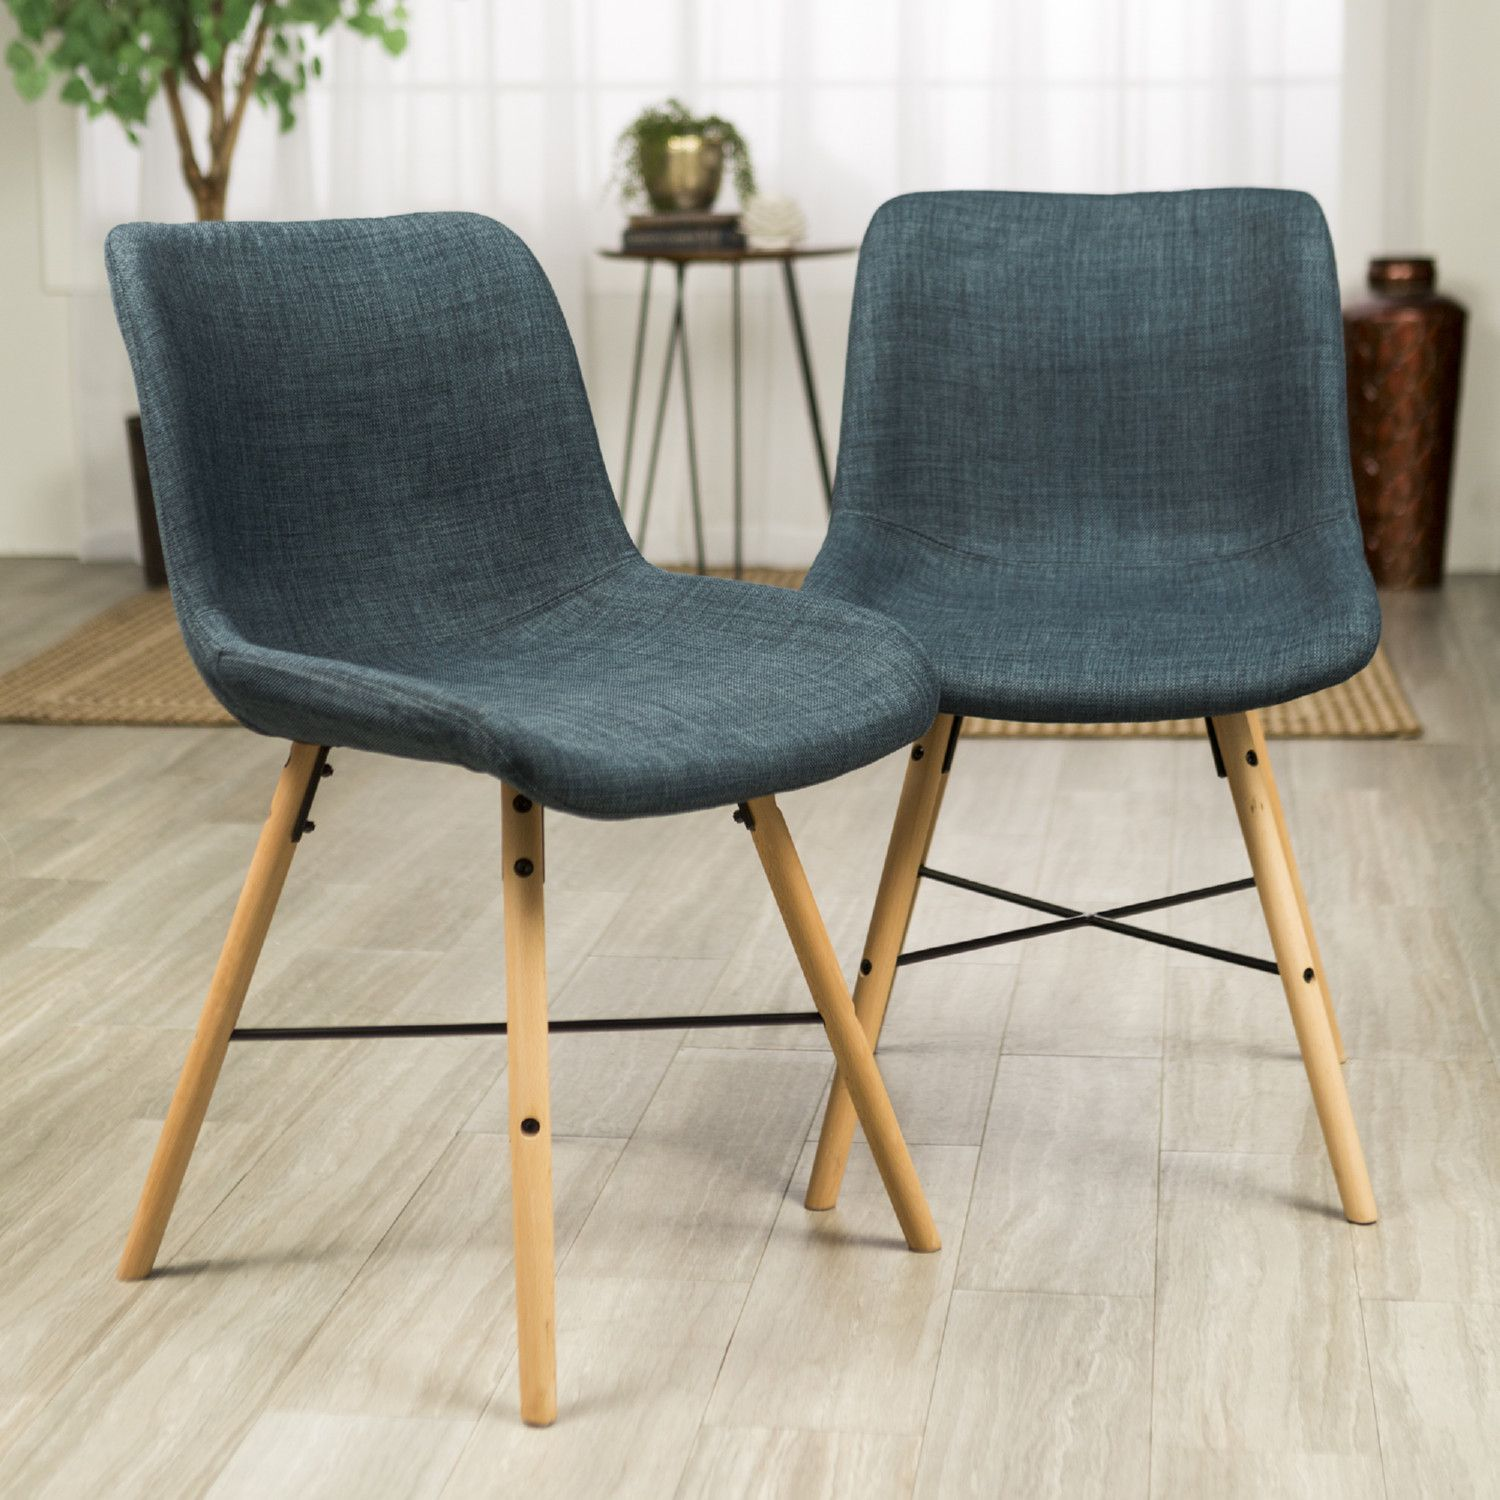 Walker Edison Ch18sno2bu Mid Century Modern Dining Chair Blue Set Of 2 Modern Dining Chairs Dining Chairs Upholstered Chairs